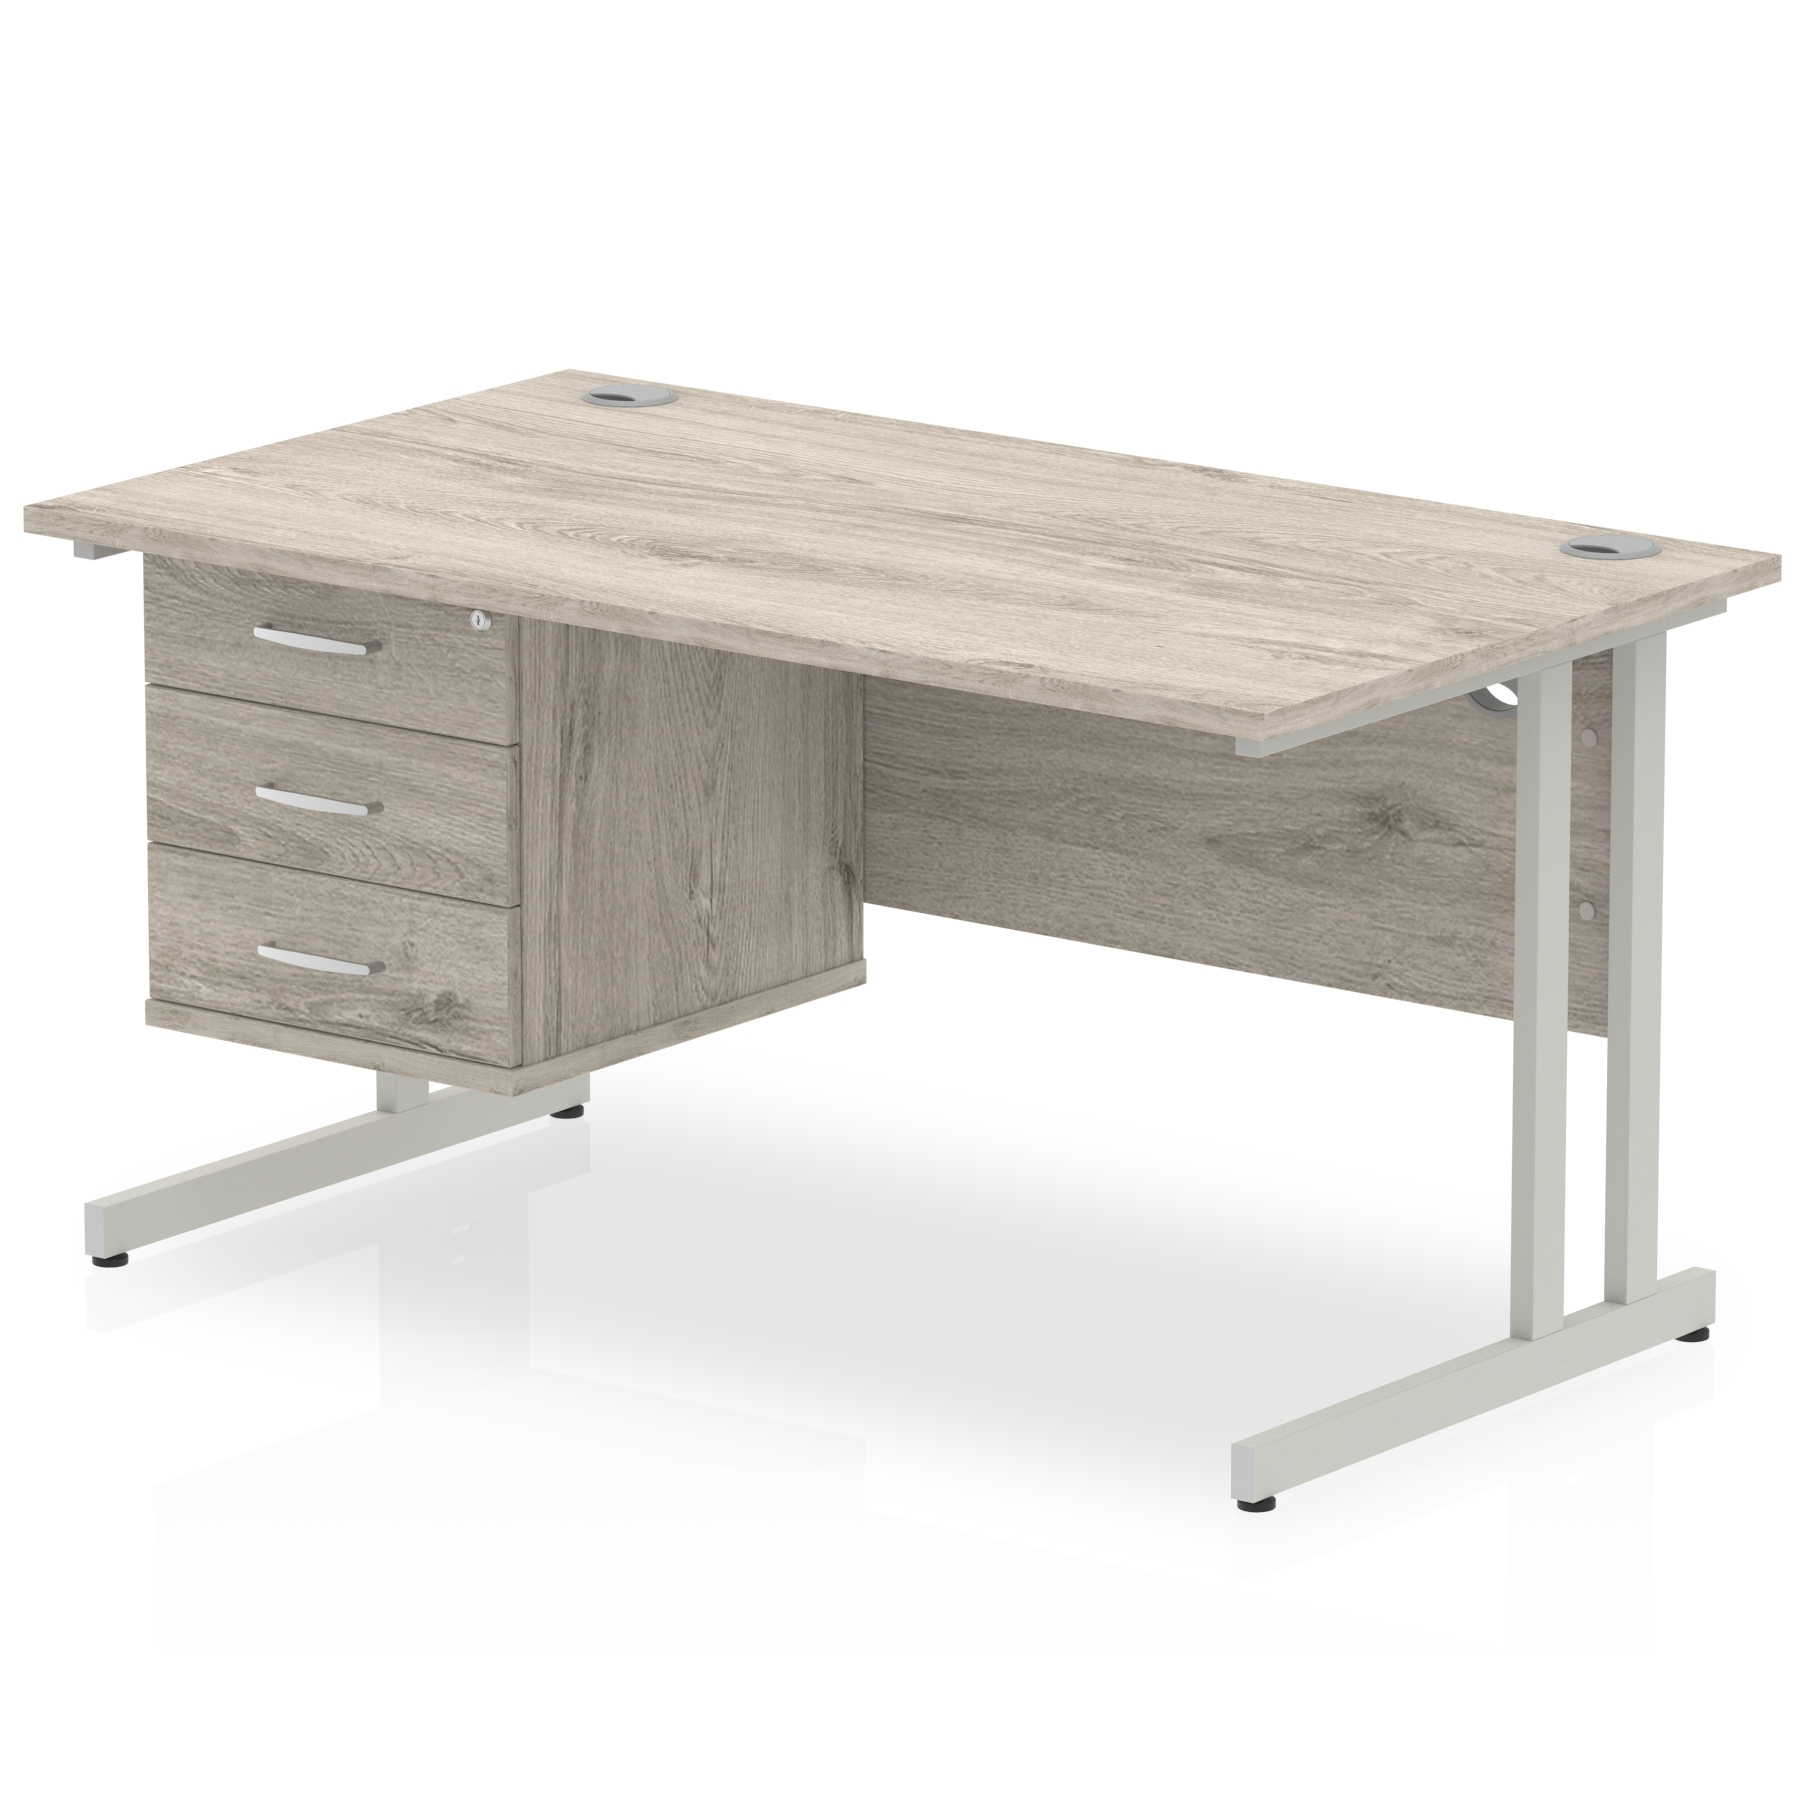 Trexus Rectangular Desk Silver Cantilever Leg 1400x800mm Fixed Ped 3 Drawers Grey Oak Ref I003462